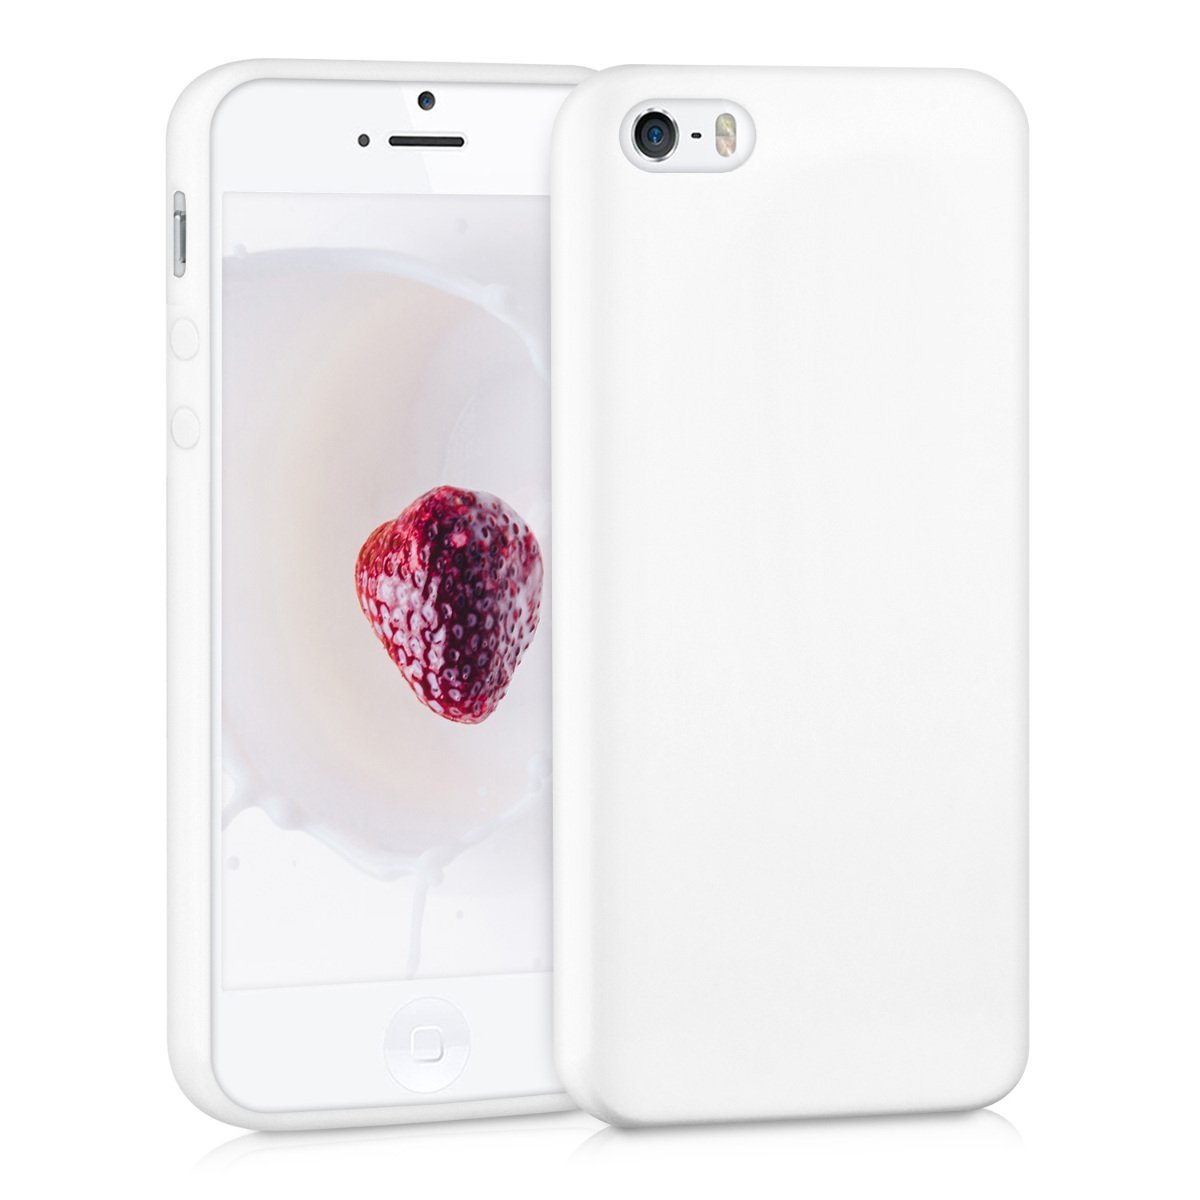 c717274a5e3 kwmobile TPU Silicone Case for Apple iPhone SE   5   5S - Soft Flexible  Shock